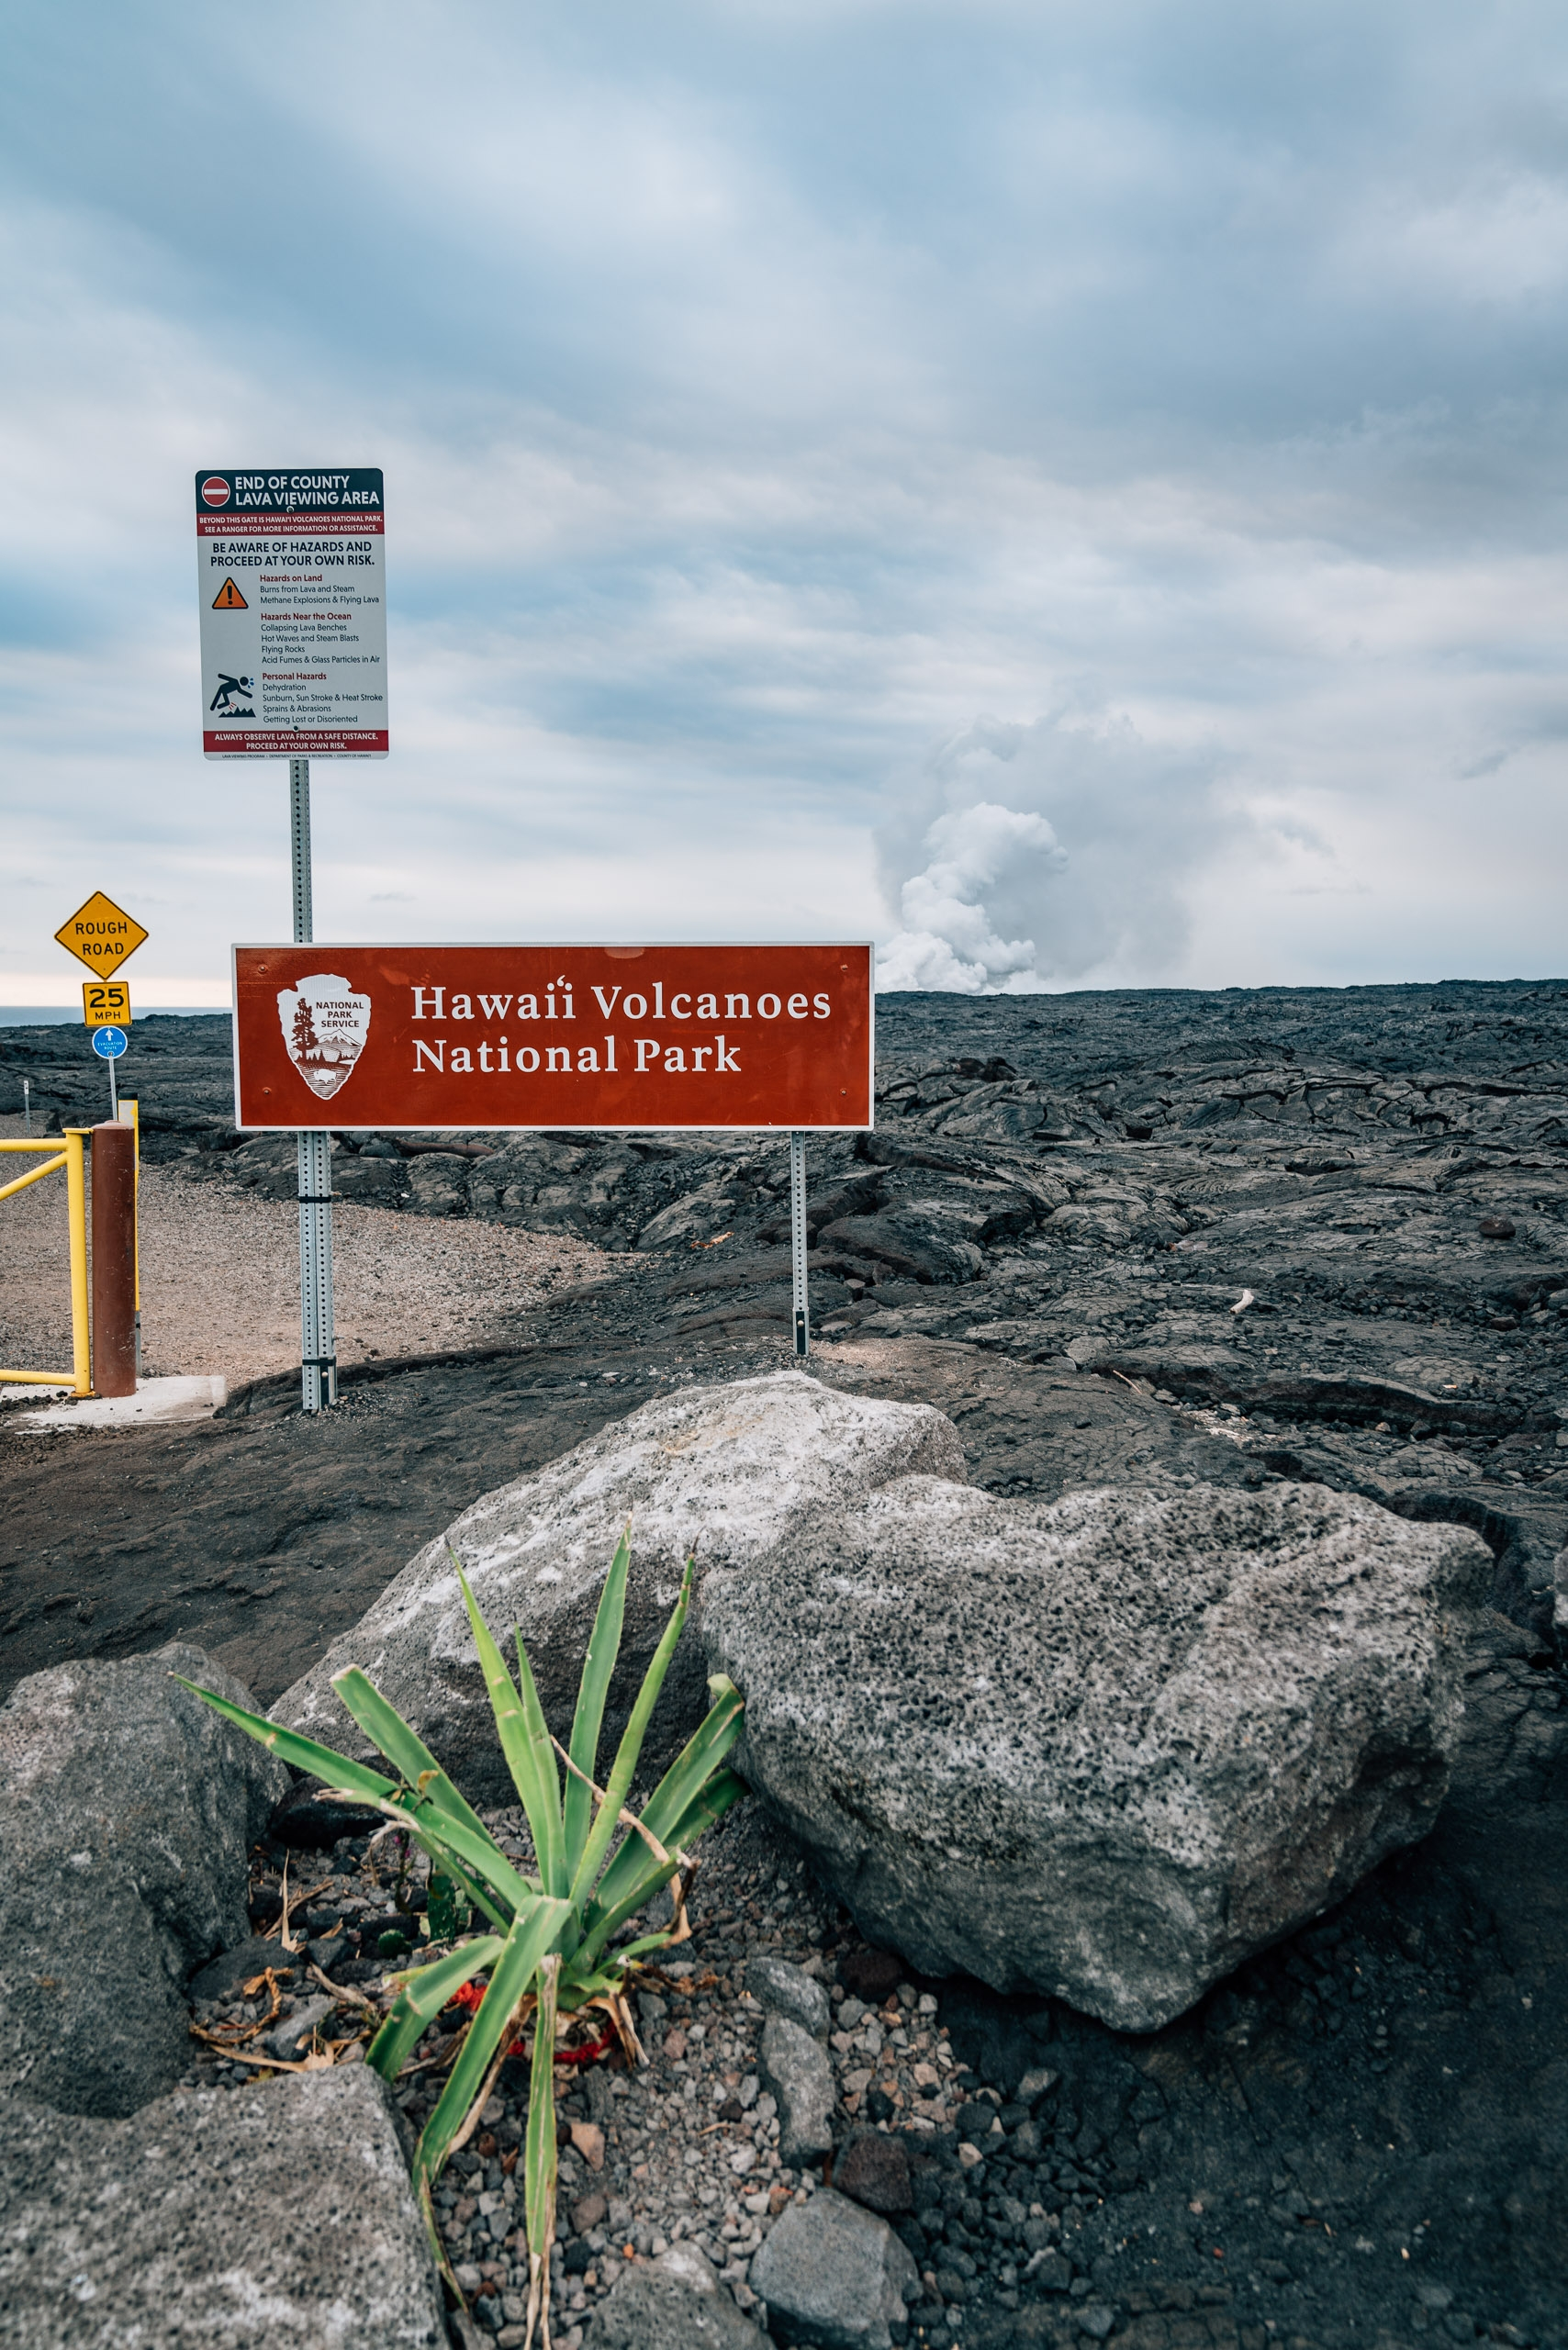 Welcome to Hawaii Volcanoes National Park